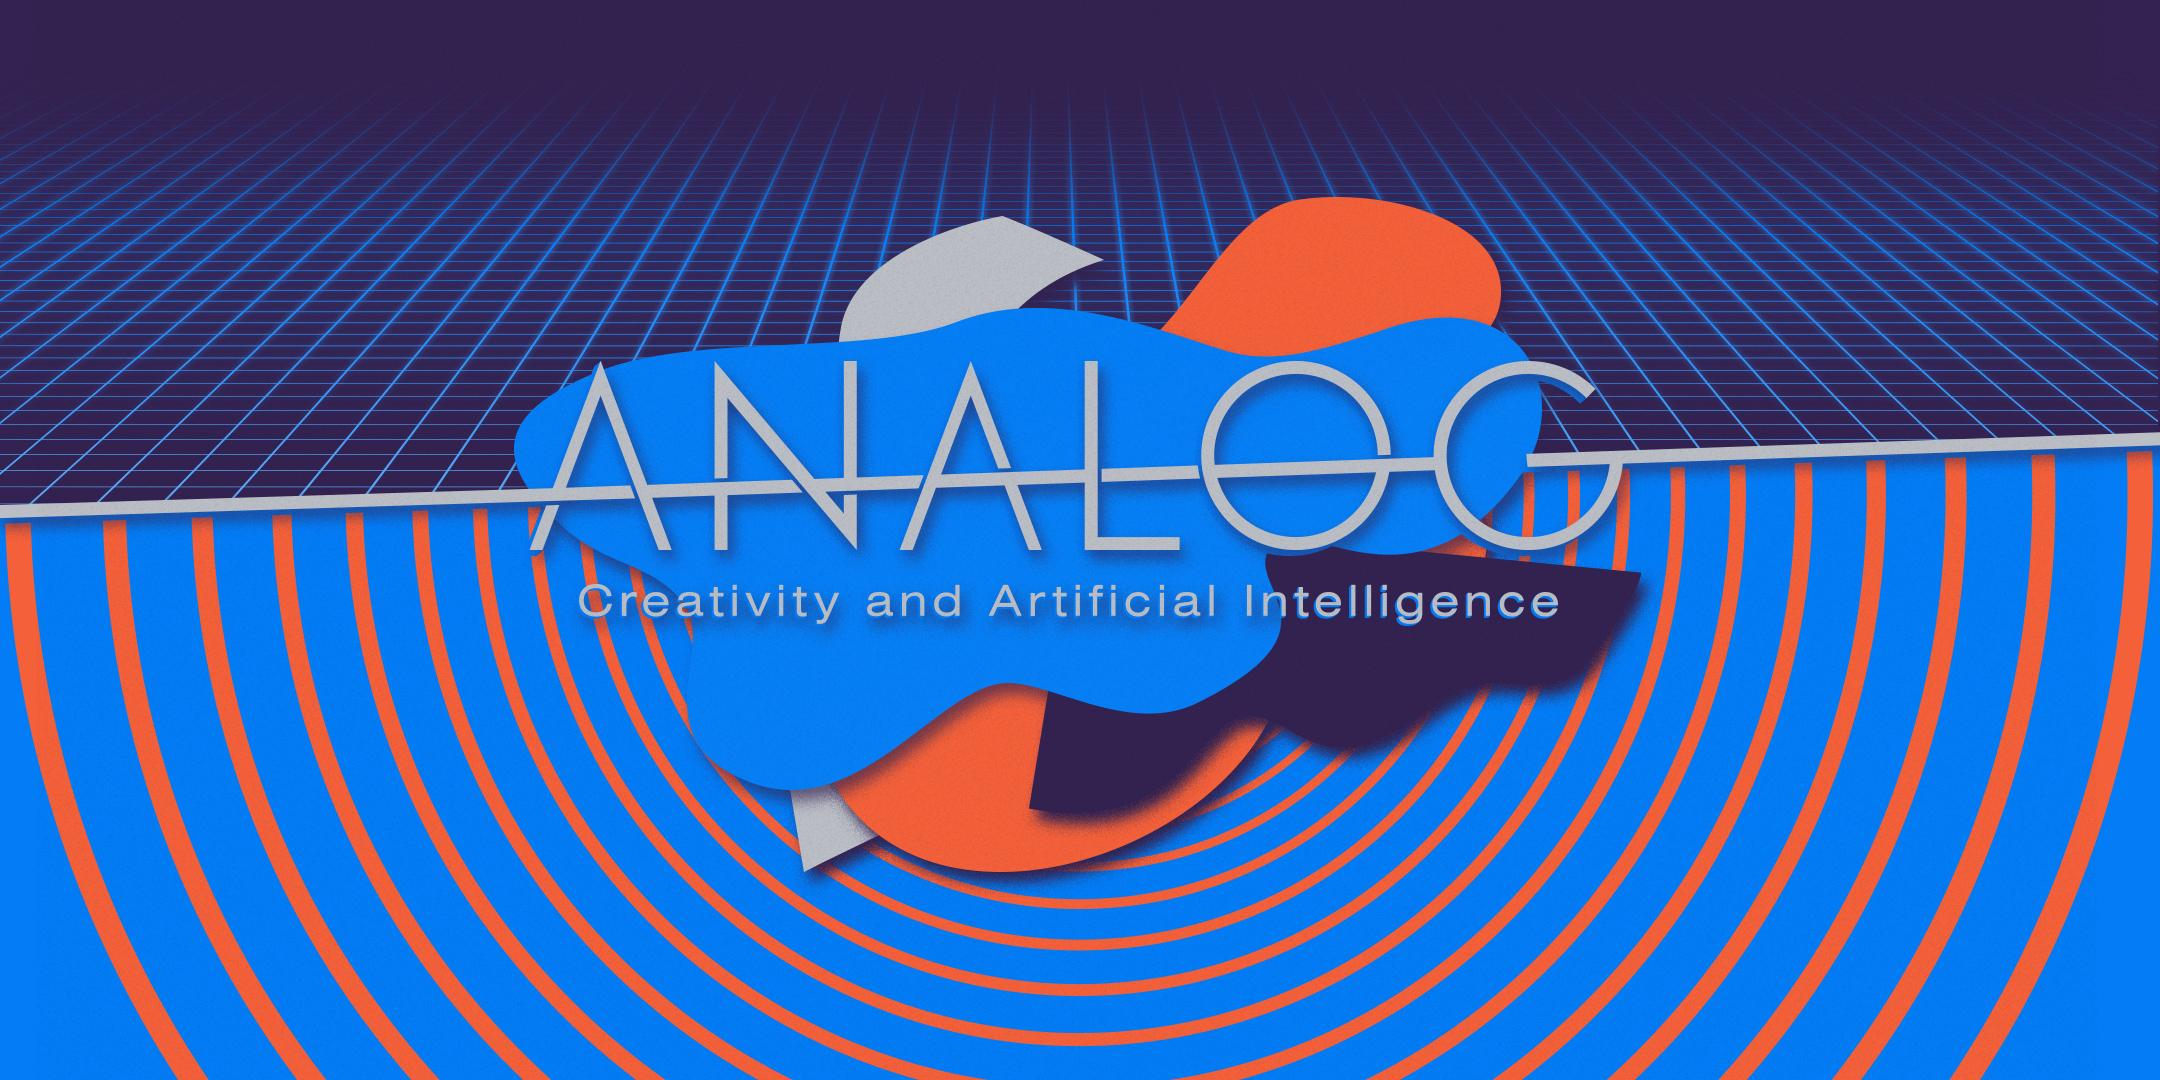 Analog: Creativity and Artificial Intelligence Conference (Vancouver)